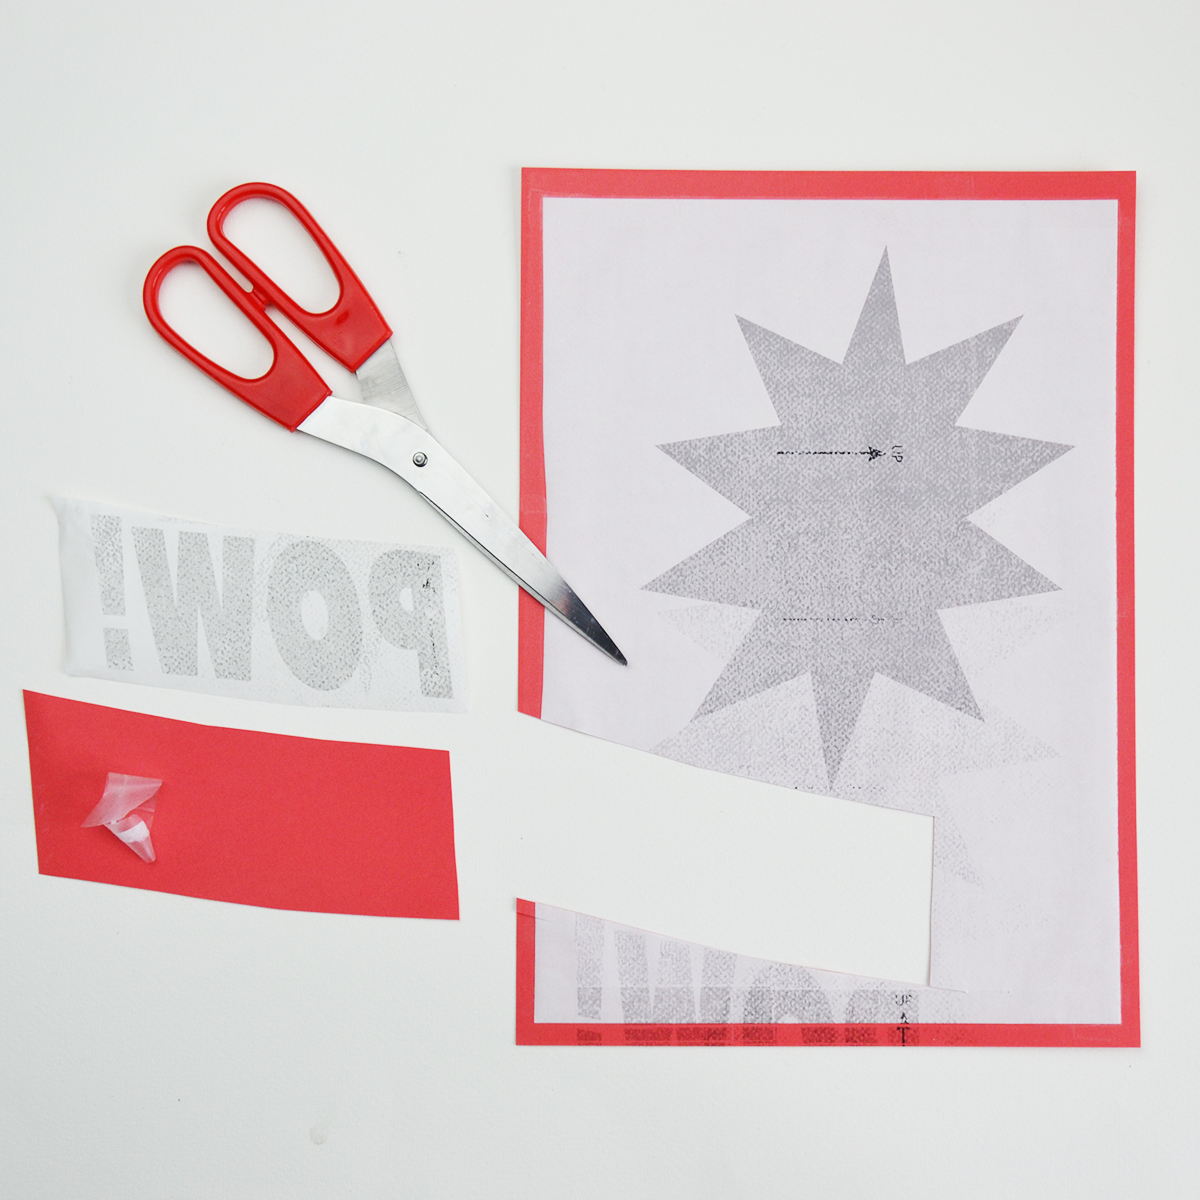 Make sewing appliqué as easy as can be with your home printer! Learn how to print on Heat N Bond to transfer applique designs quickly without any annoying tracing! www.cucicucicoo.com